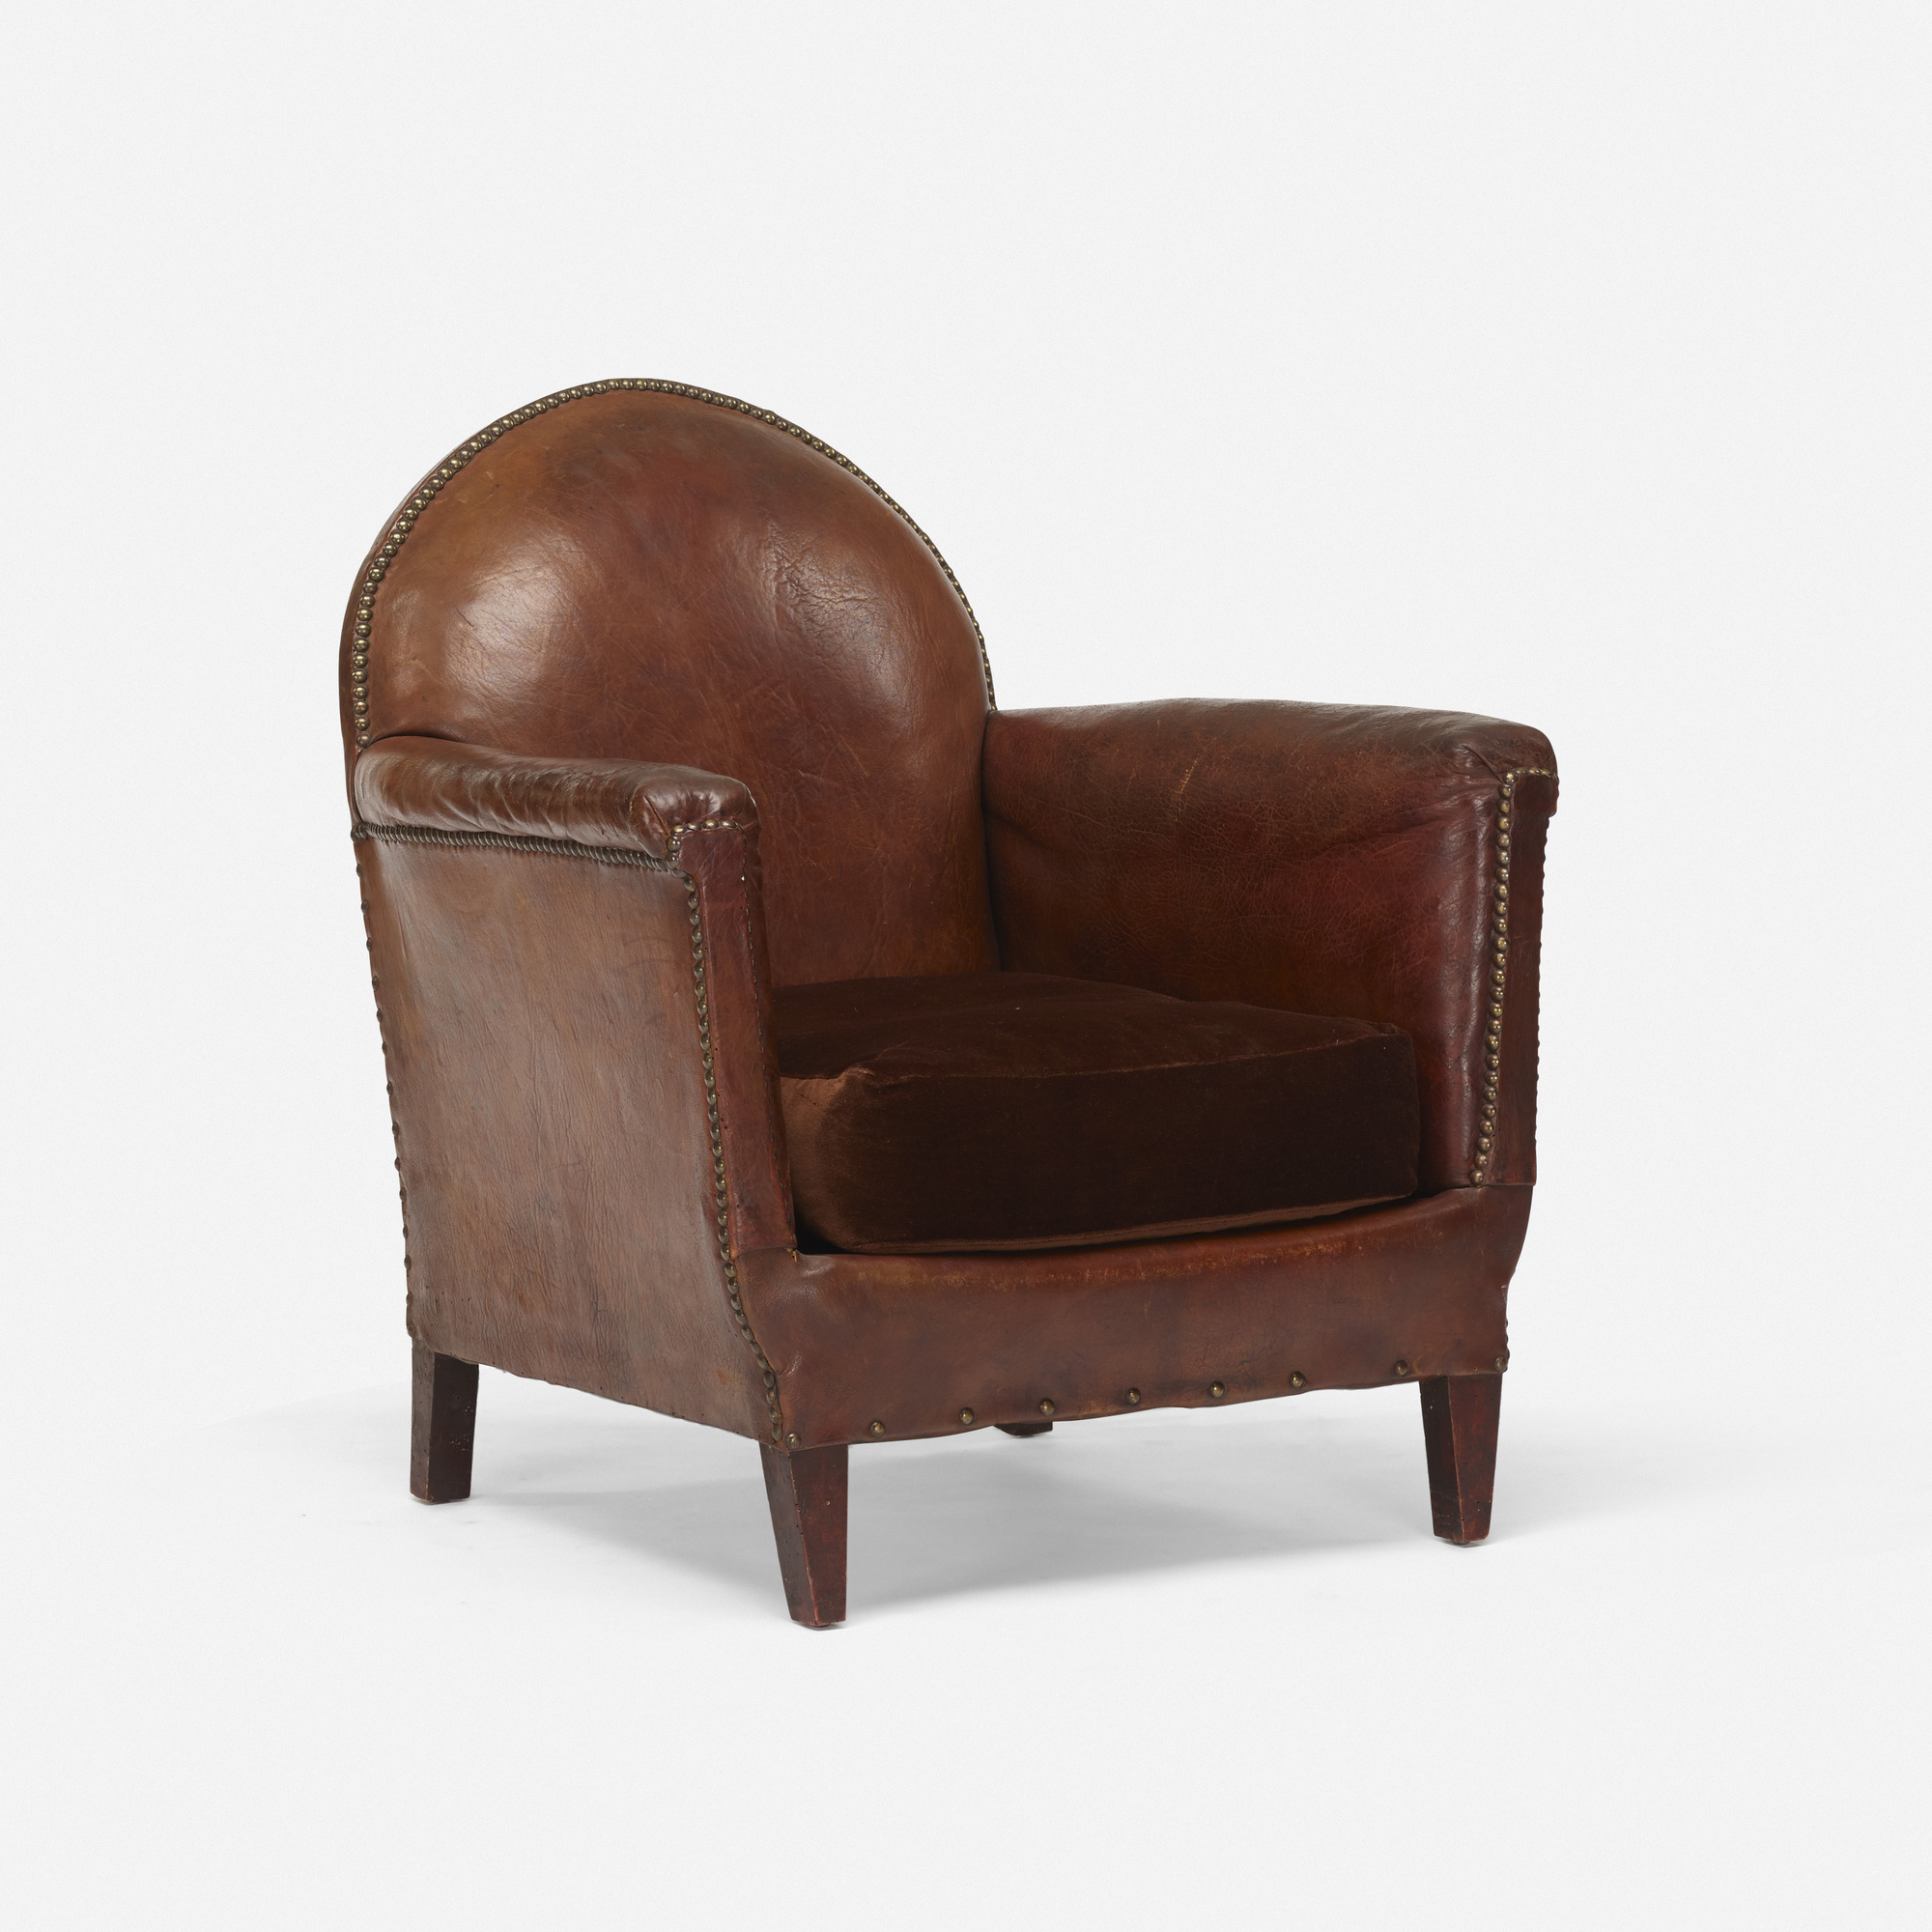 161: French / Club Chair (1 Of 3)